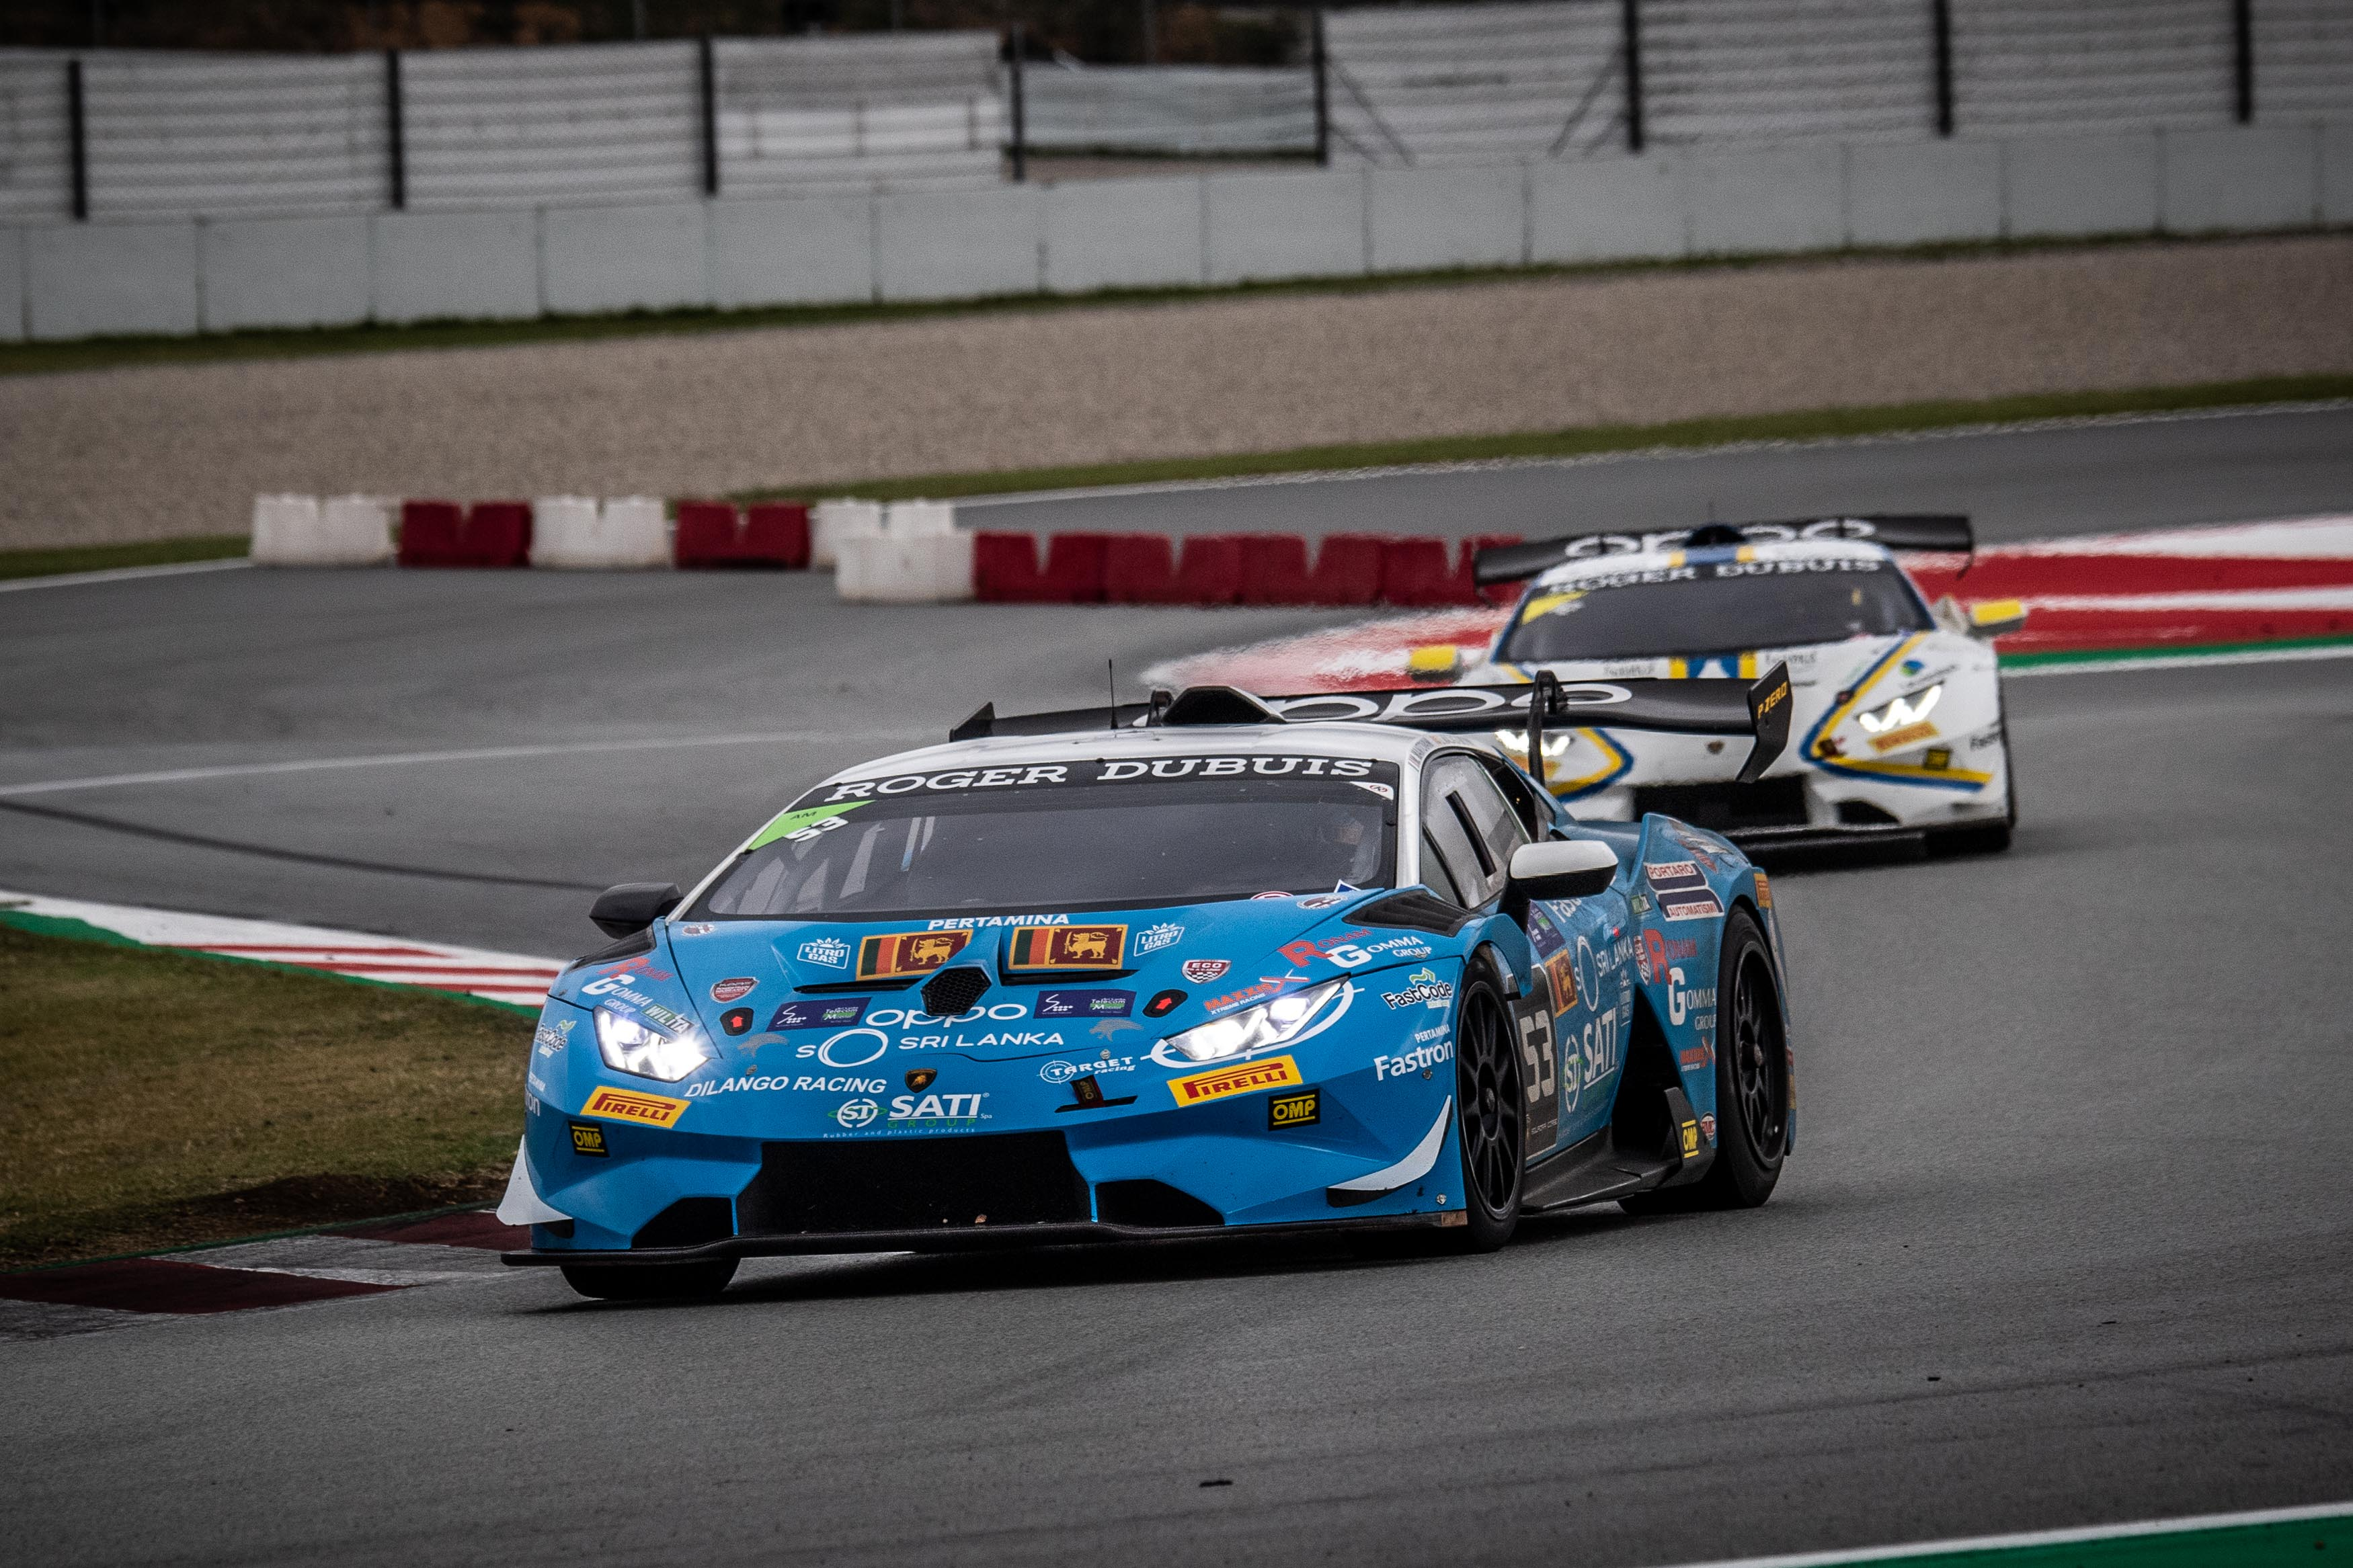 Target Racing gets podiums, points finishes at Barcelona